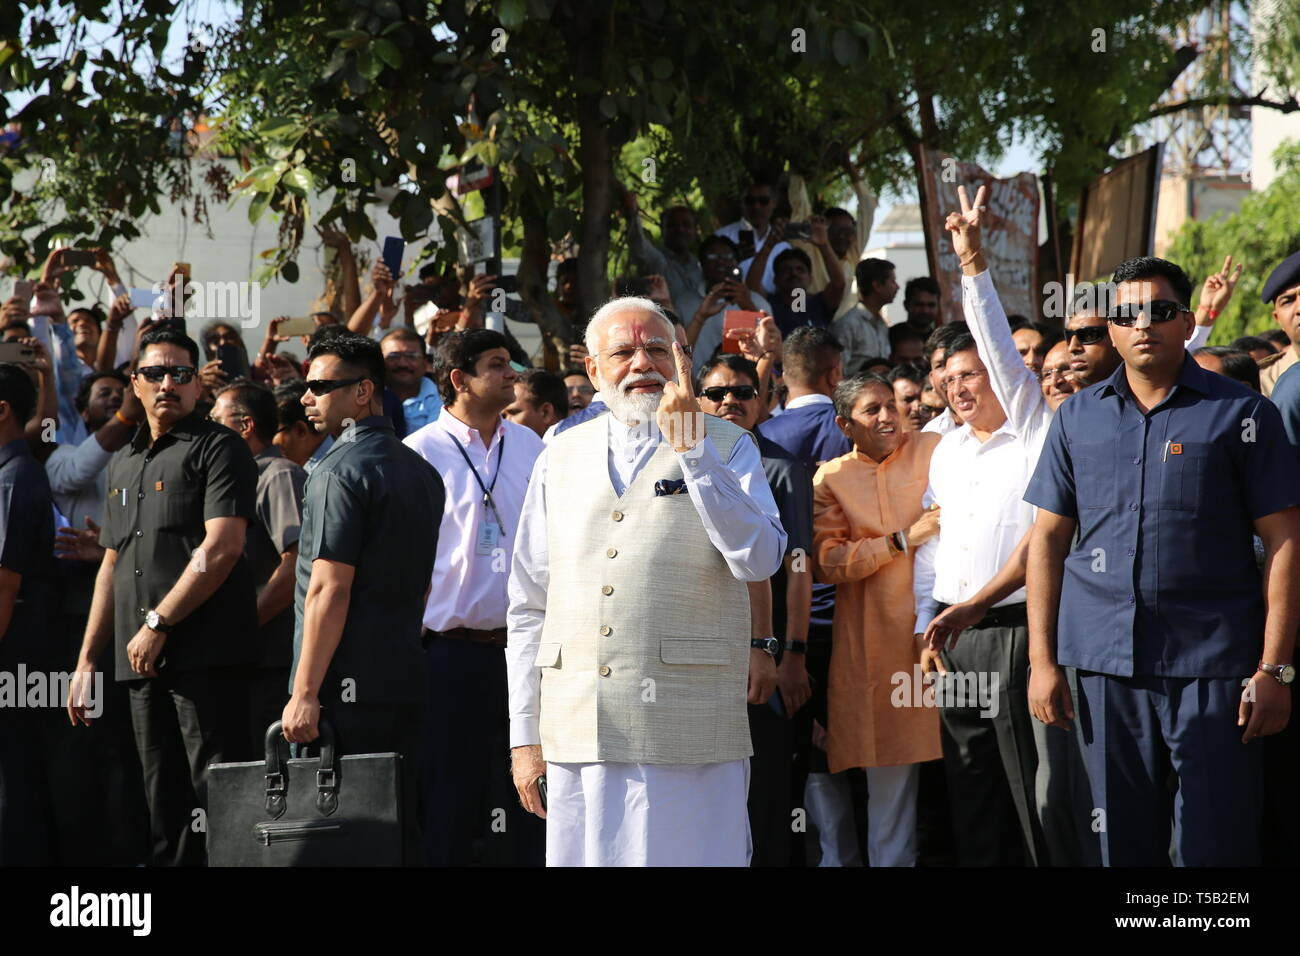 (190423) -- AHMEDABAD, April 23, 2019 (Xinhua) -- Indian Prime Minister Narendra Modi (C) displays his inked finger after casting his vote at a polling station in Ahmedabad city of India's western state Gujarat on April 23, 2019. Indian Prime Minister Narendra Modi cast his vote in Ahmedabad city on Tuesday, which saw the third phase of the ongoing parliamentary elections. The third phase of the polling of votes in India's 17th general elections is the biggest among all the seven phases. The first two phases took place on April 11 and April 18 respectively, while the last phase is slated t - Stock Image